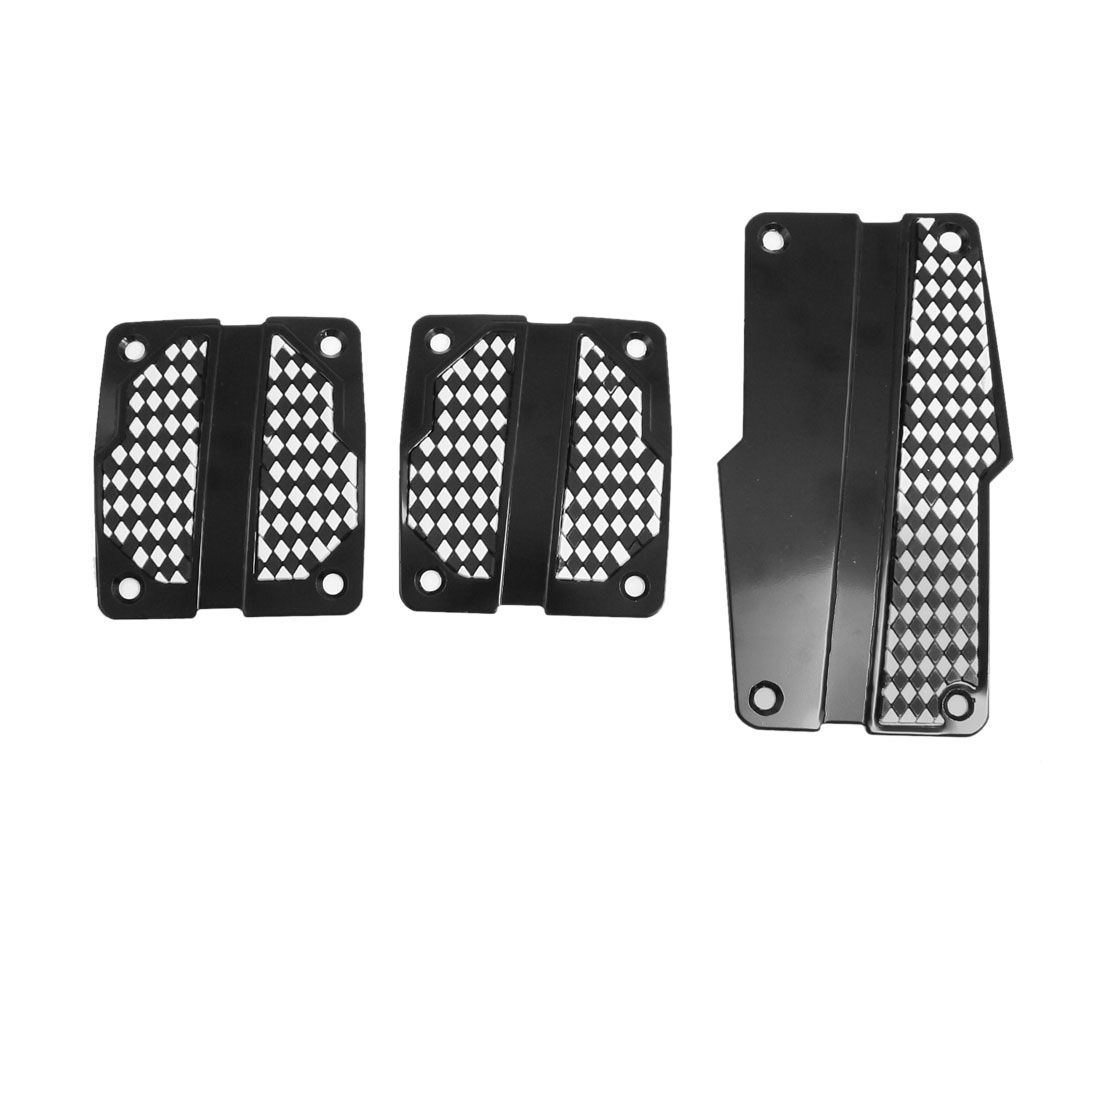 3 Pcs Car Vehicle White Black Gas Brake Clutch Pedal Cover Set